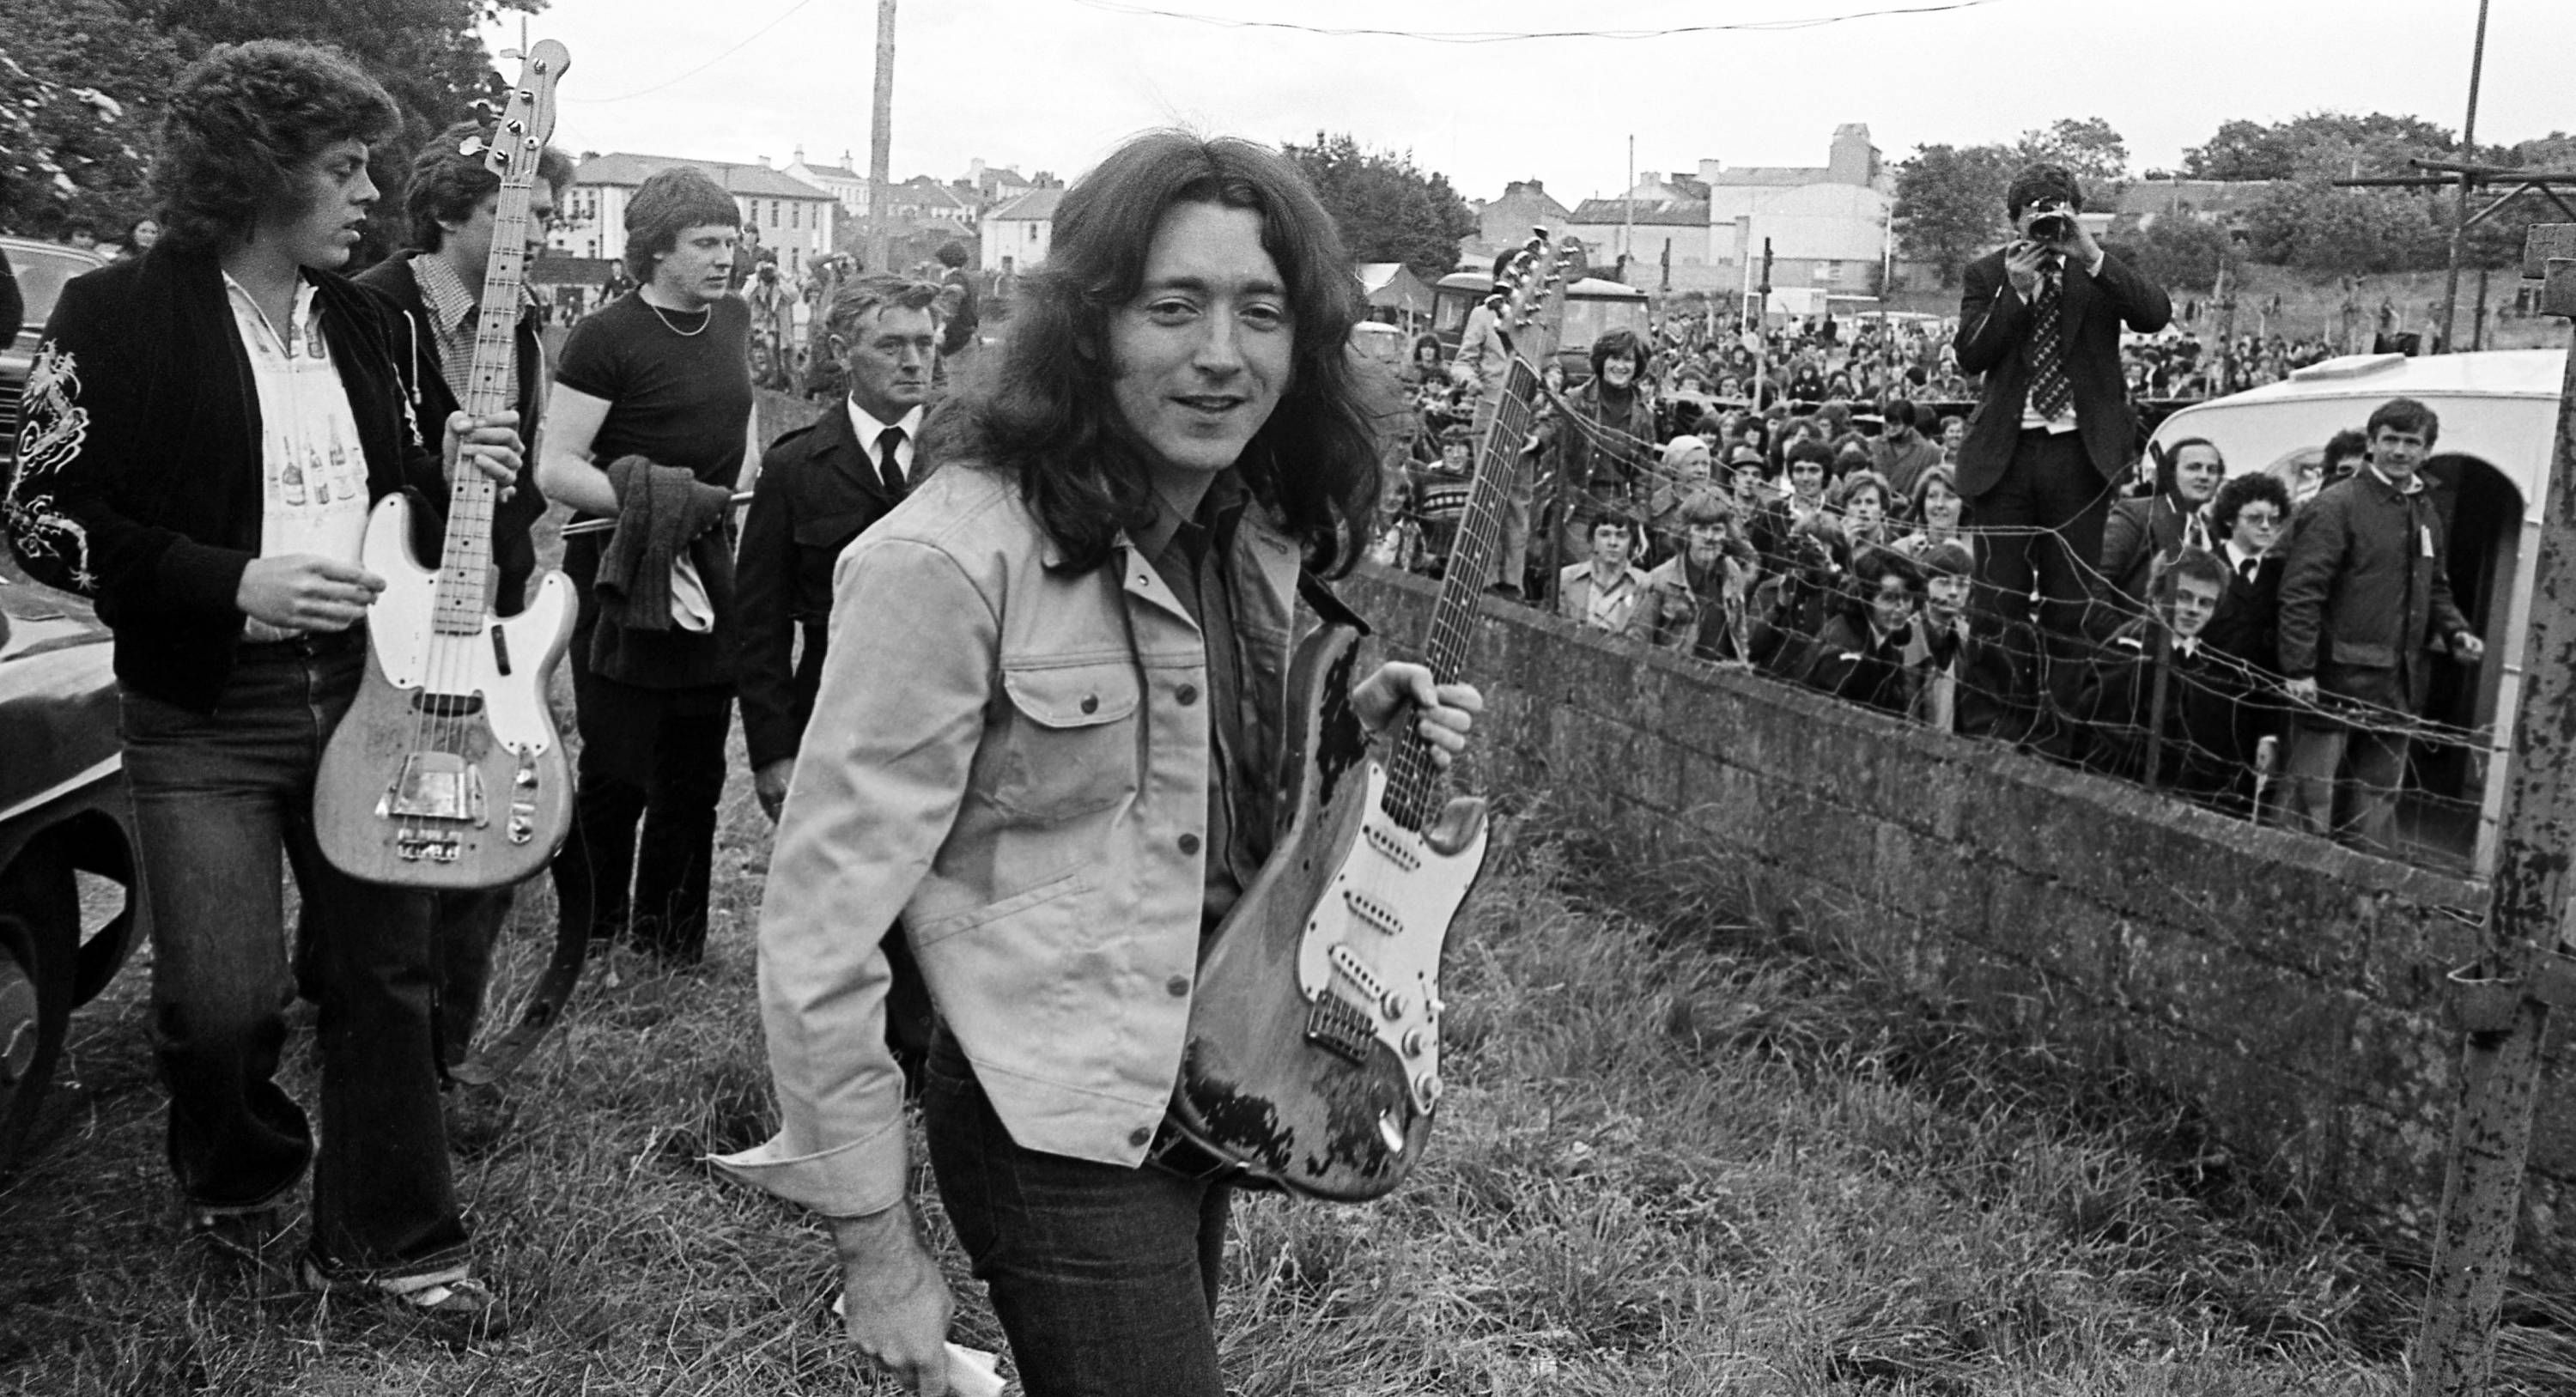 Rory Gallagher arriving at the Macroom Mountain Dew Festival (1978)